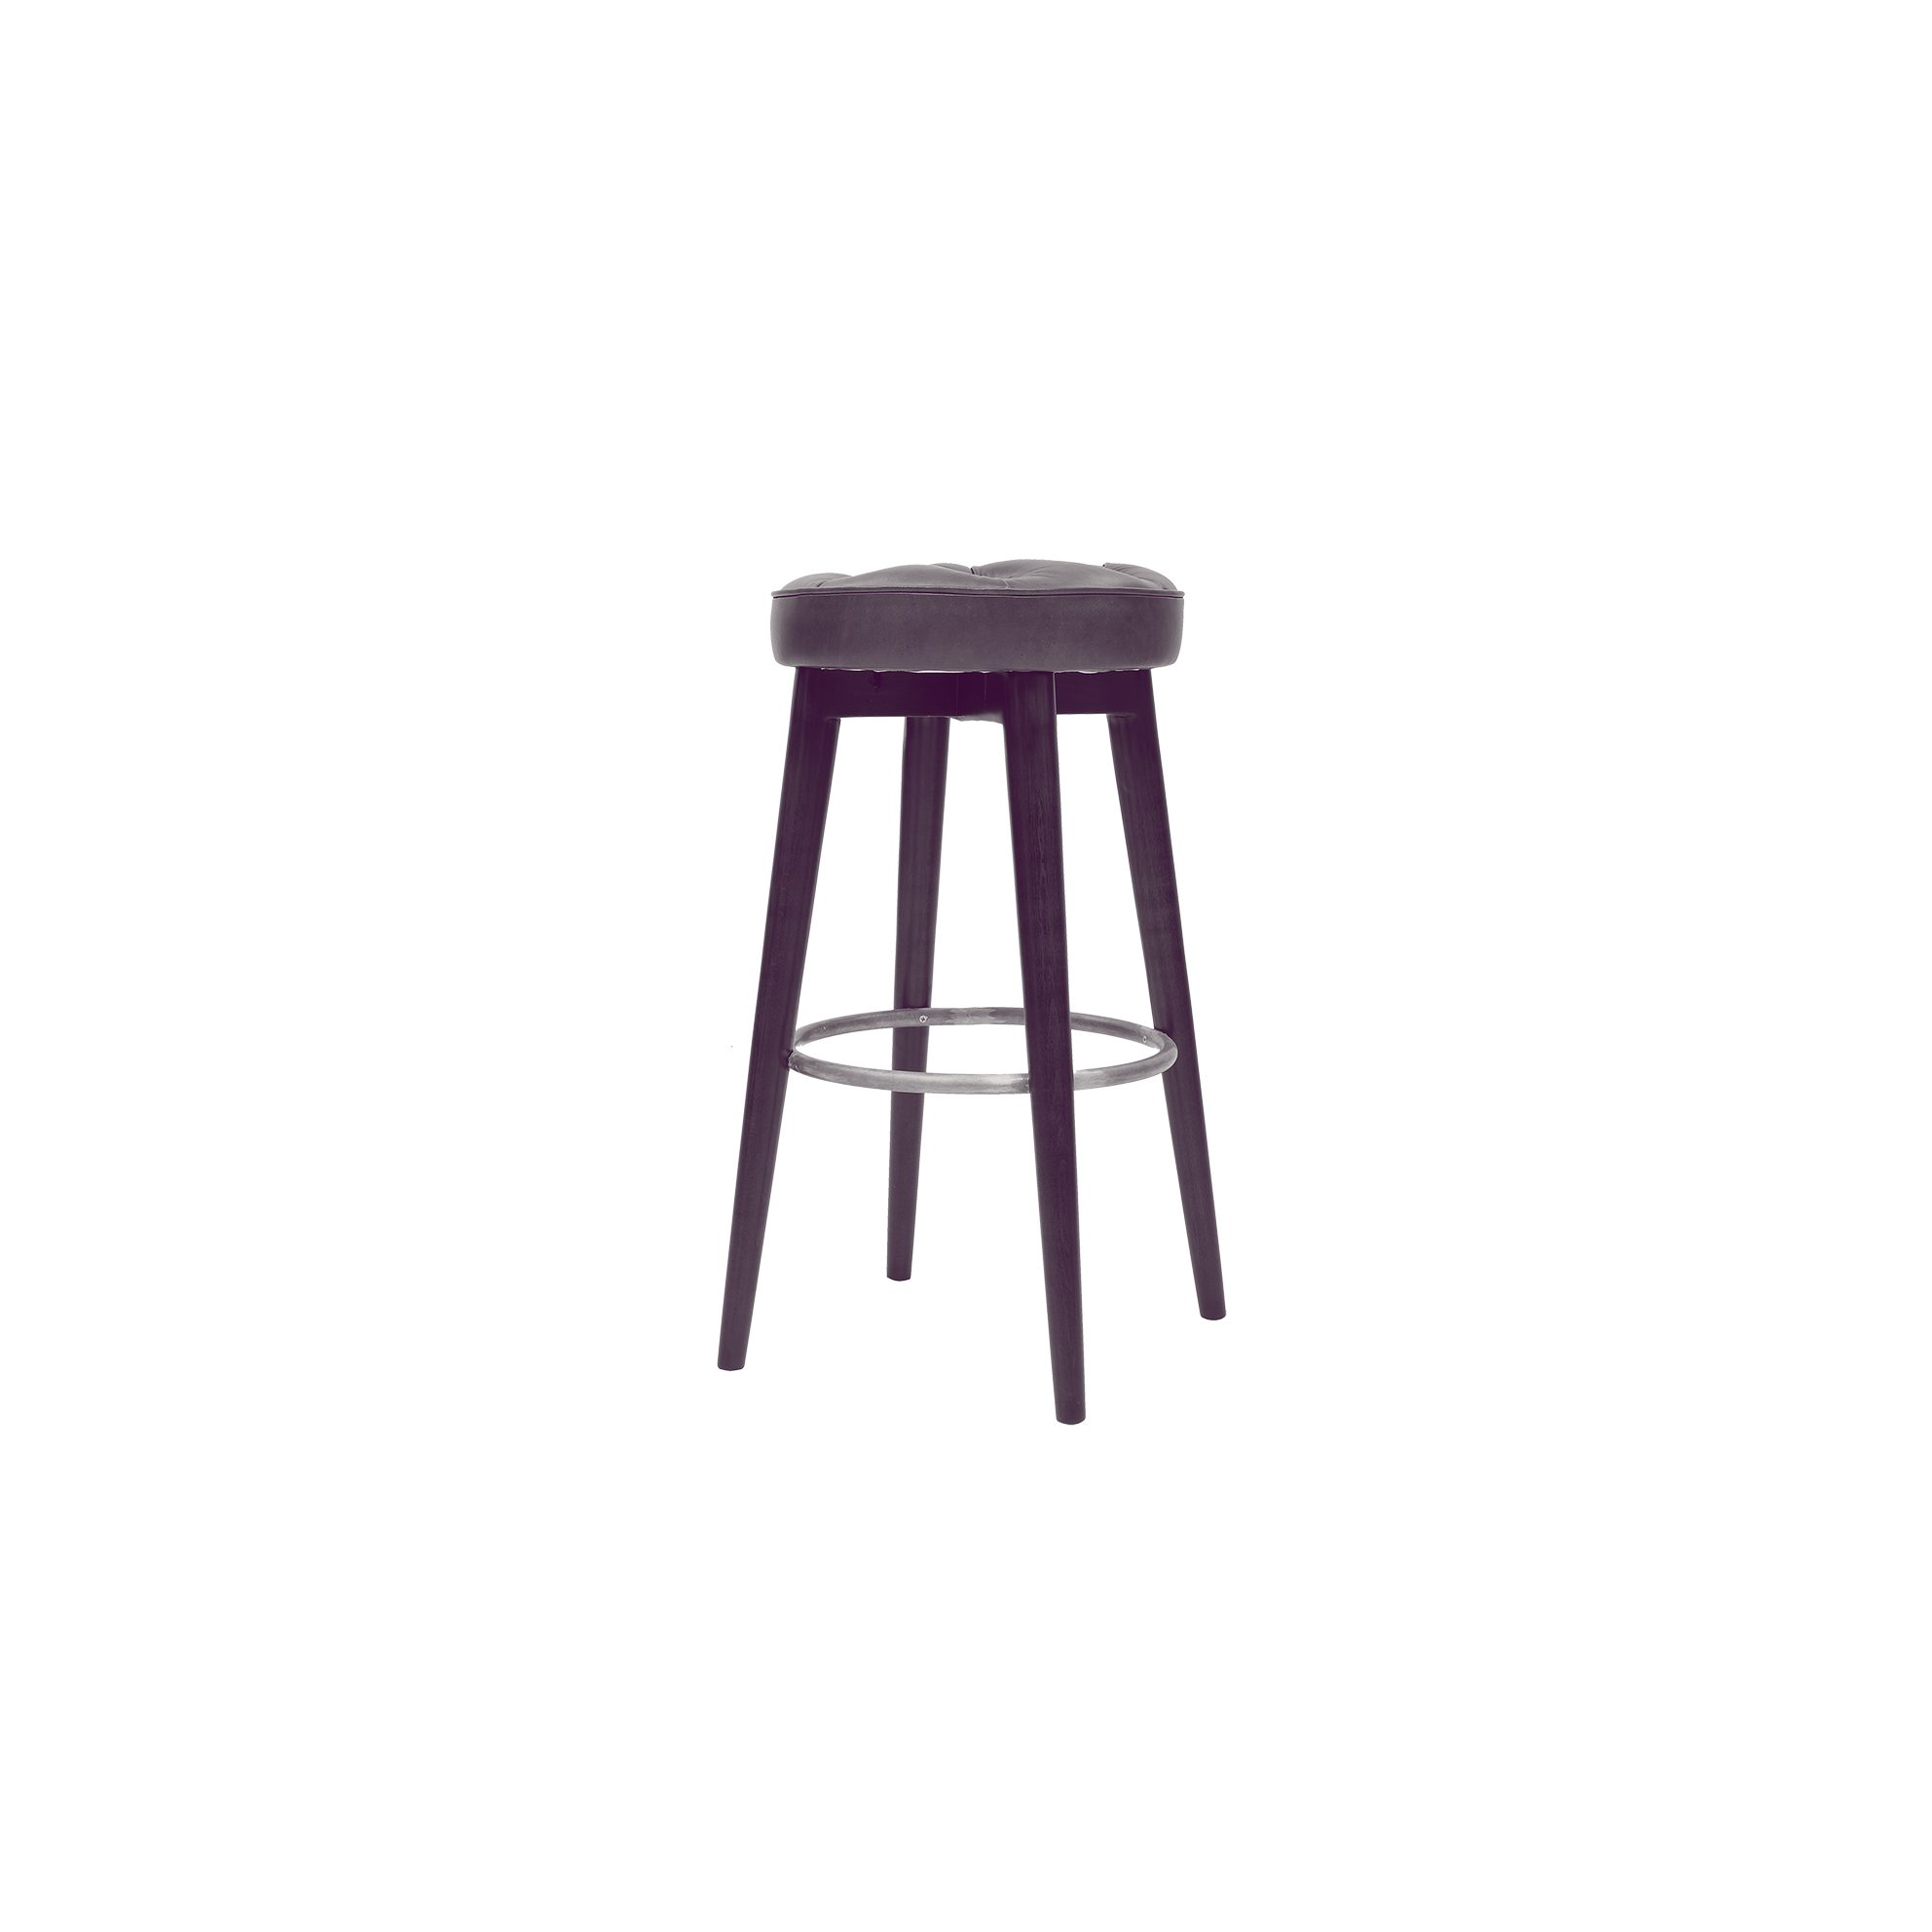 bar stool with leather upholstery